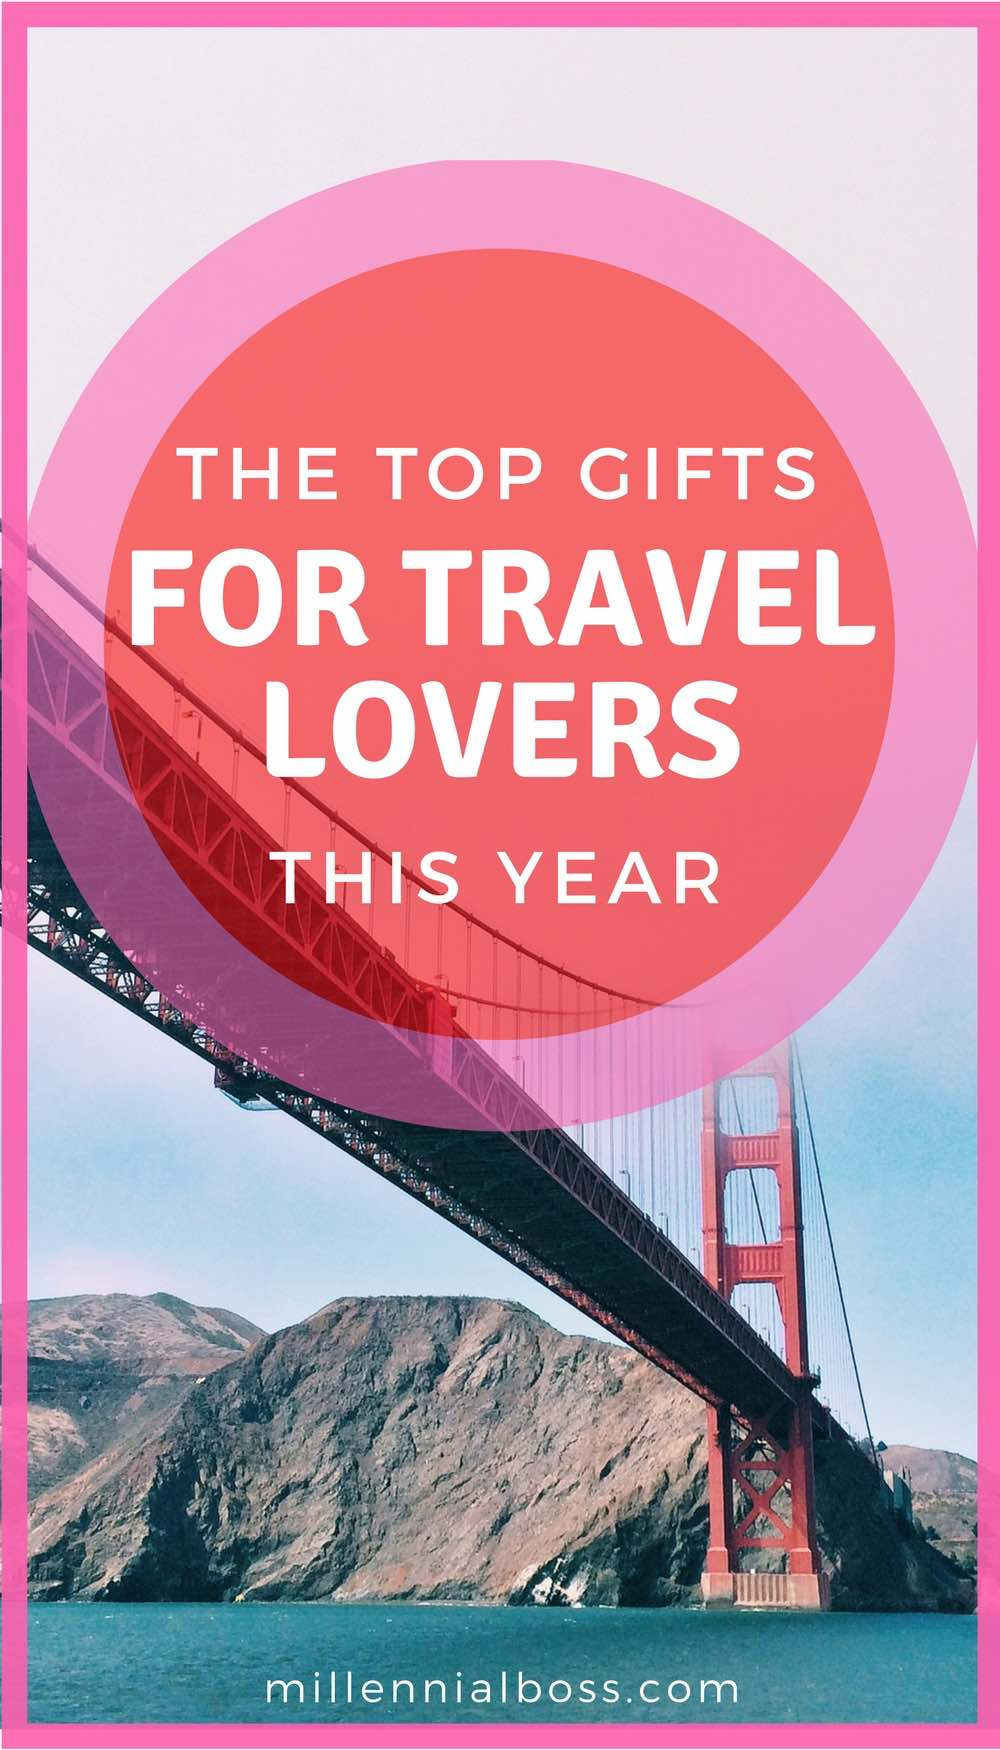 Gifts for travel lovers | Top gifts girls who love travel | Travel gifts 2017